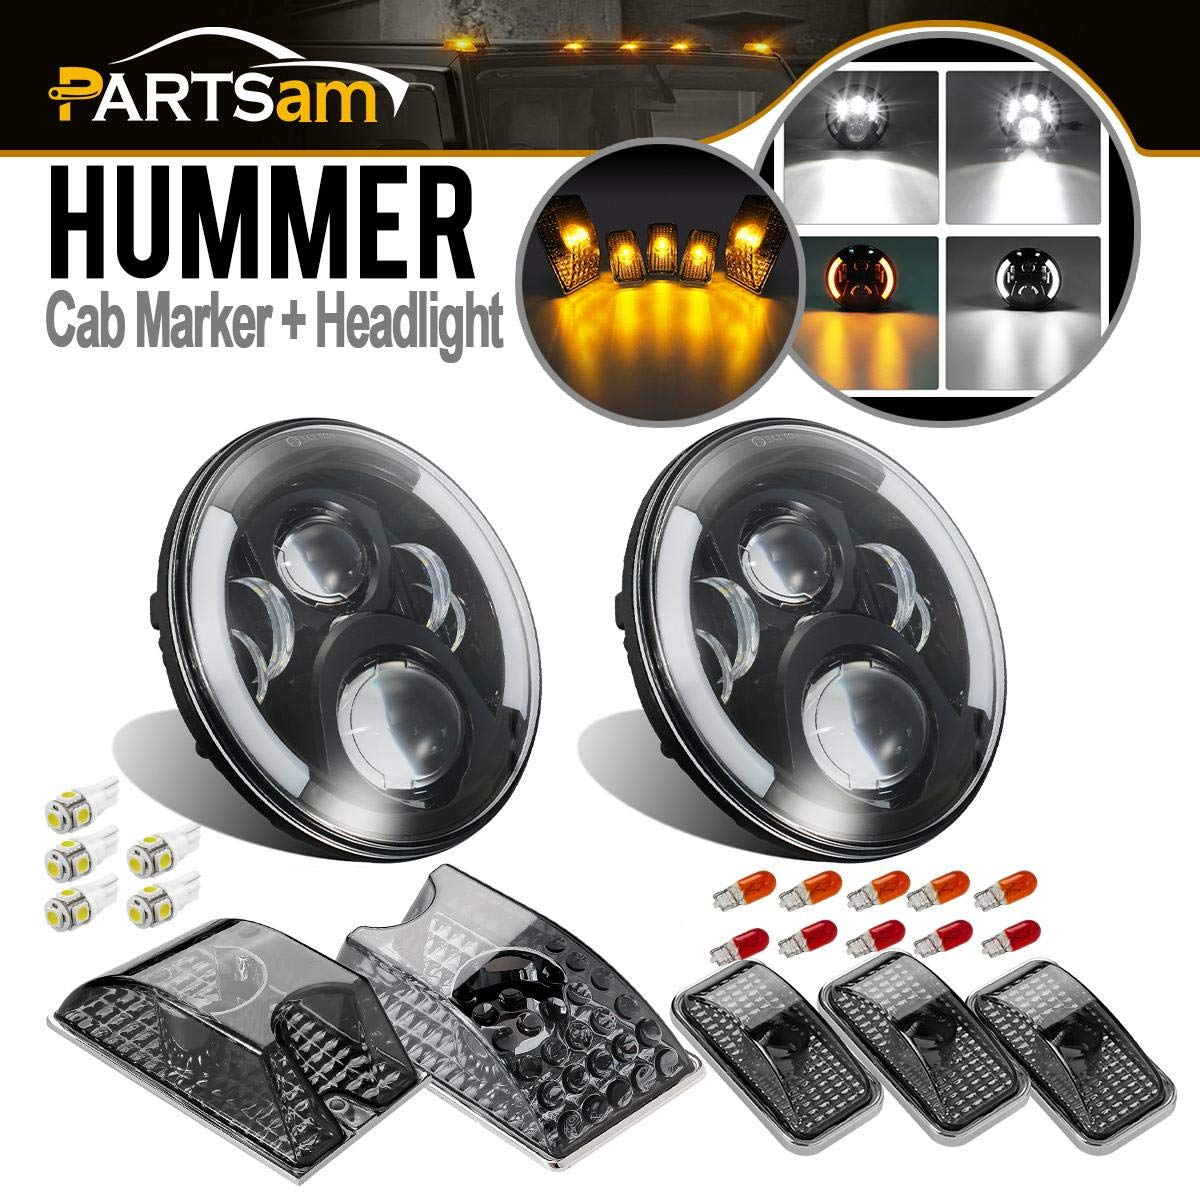 Partsam 2 x 7 Inch LED Headlights Hi/Lo Beam Daymaker w/Halo Angel Eye + 5PCS Cab Marker Roof Running Top Lights Smoke Lens Chrome + T10 5-5050-SMD White LED Replacement for 2003-2009 Hummer H2